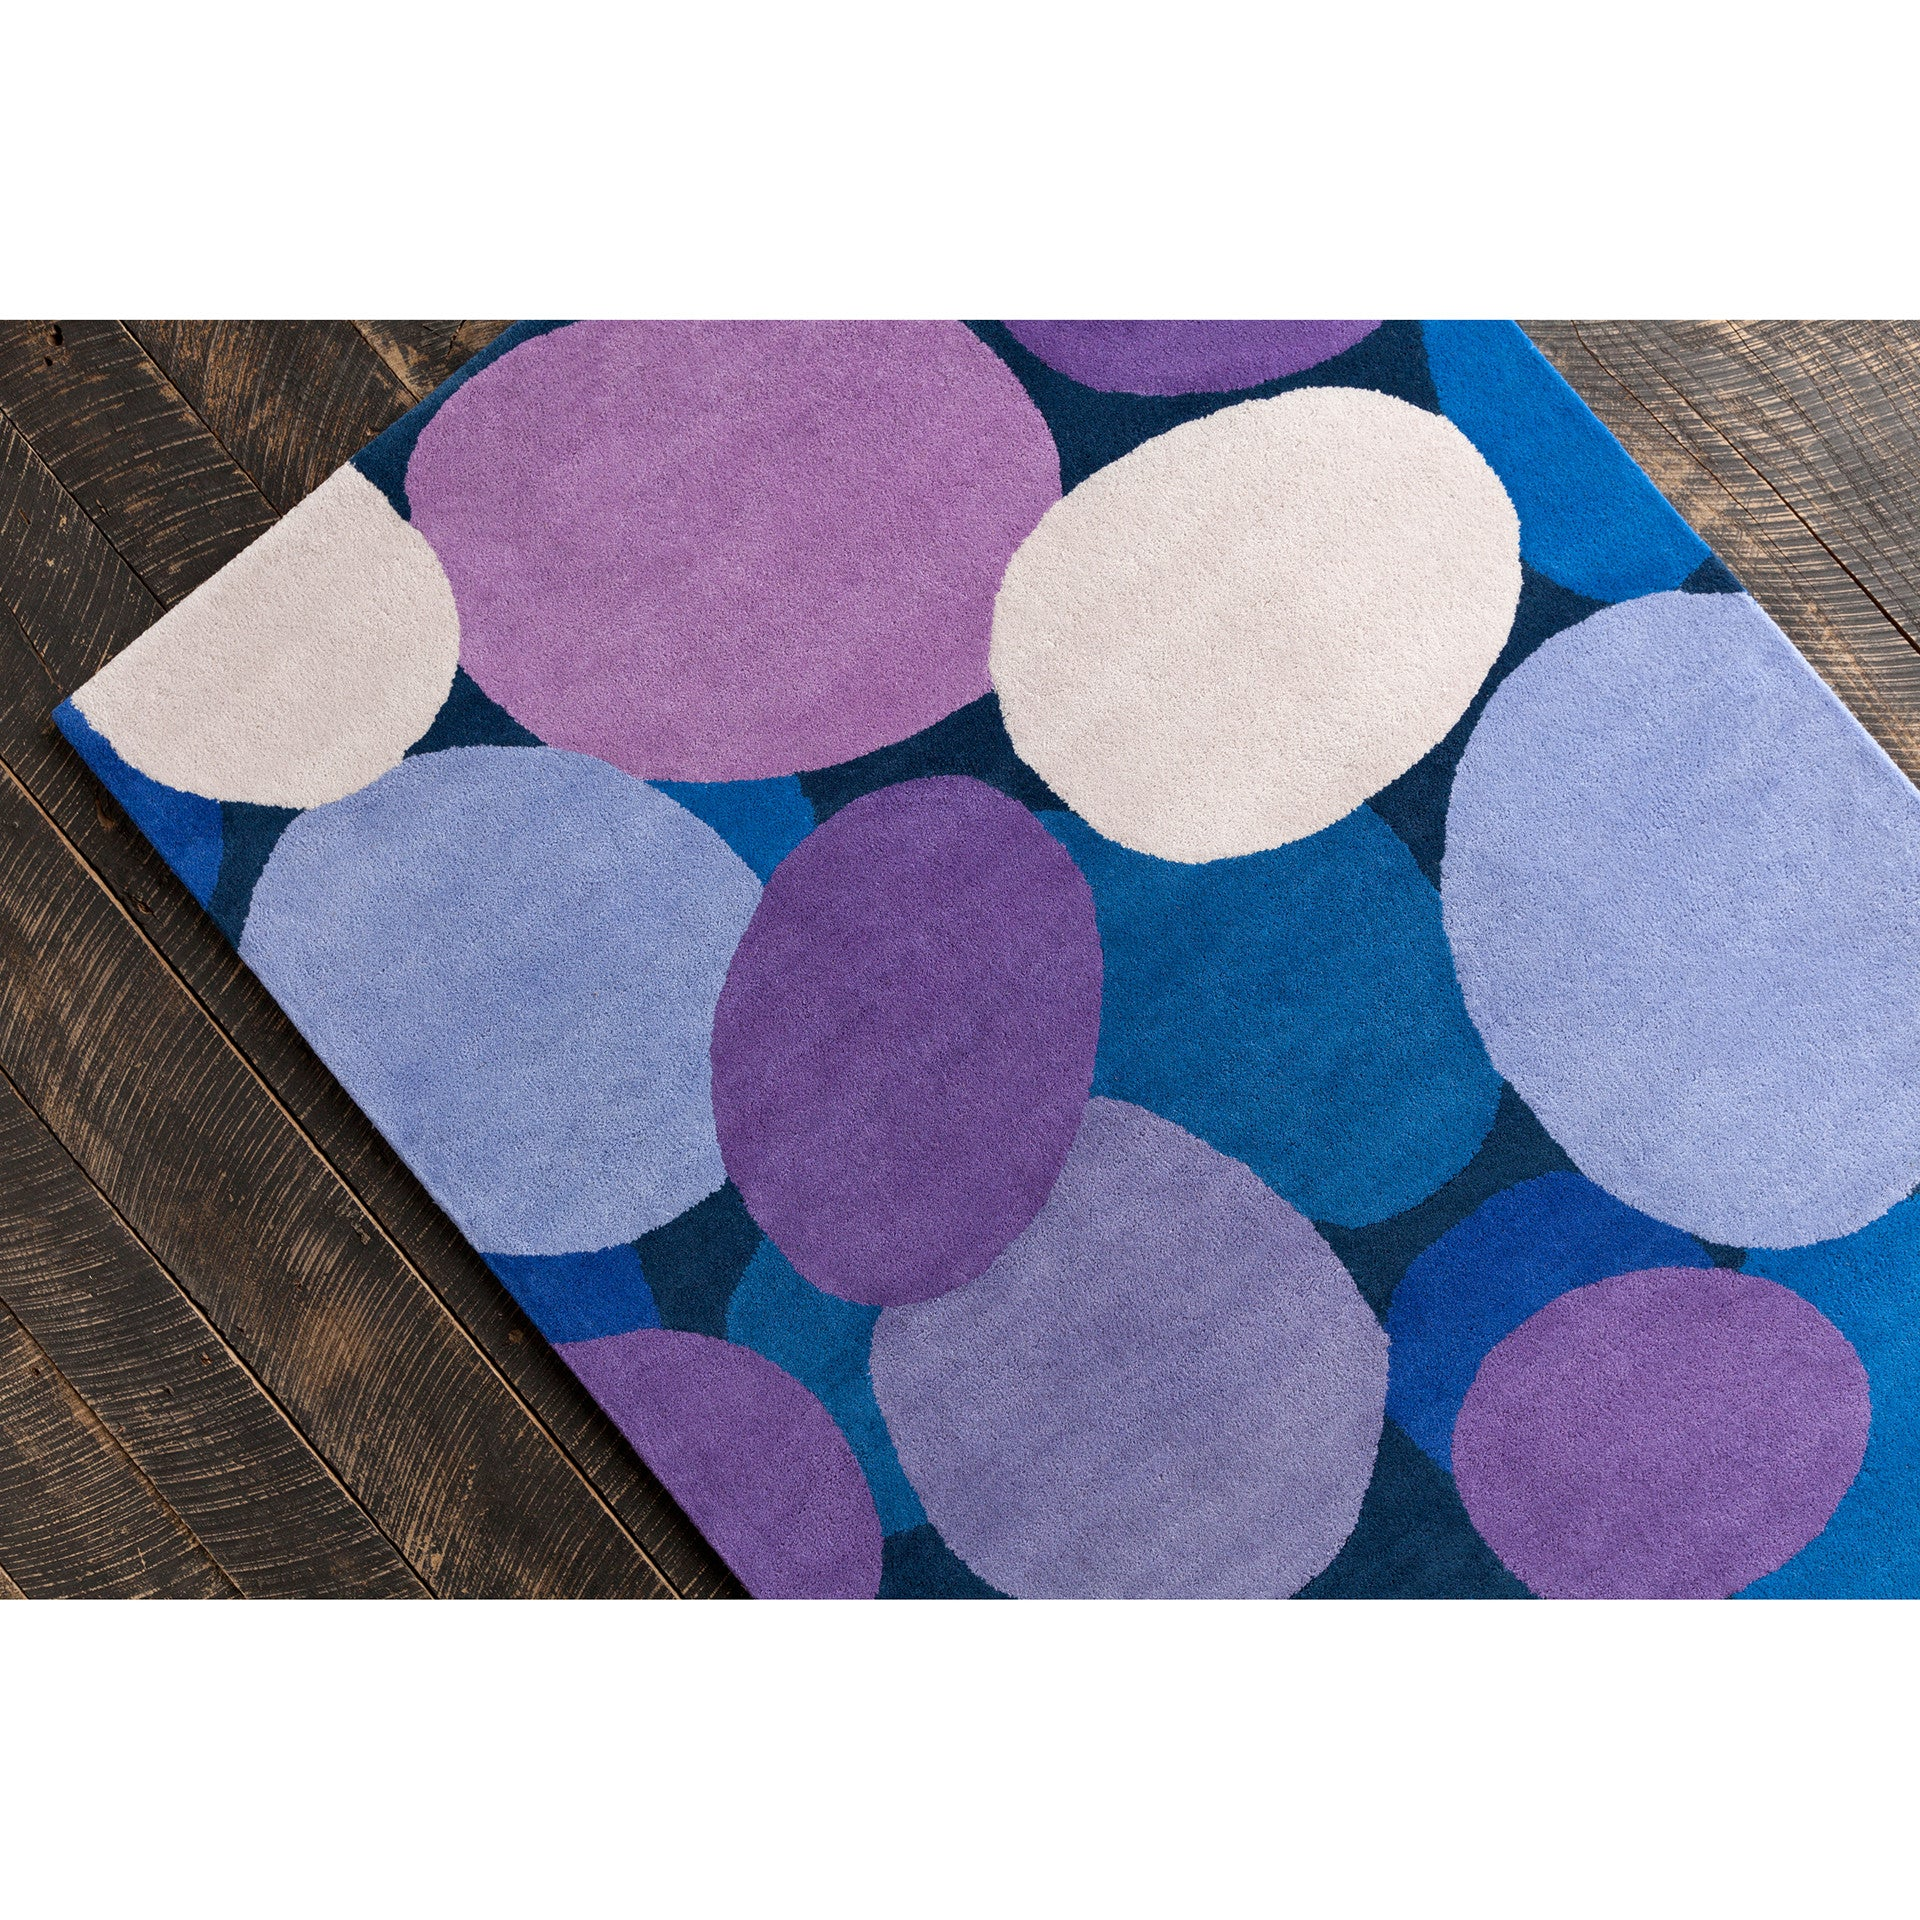 stella collection handtufted area rug in pink u0026 purple design by chandra rugs